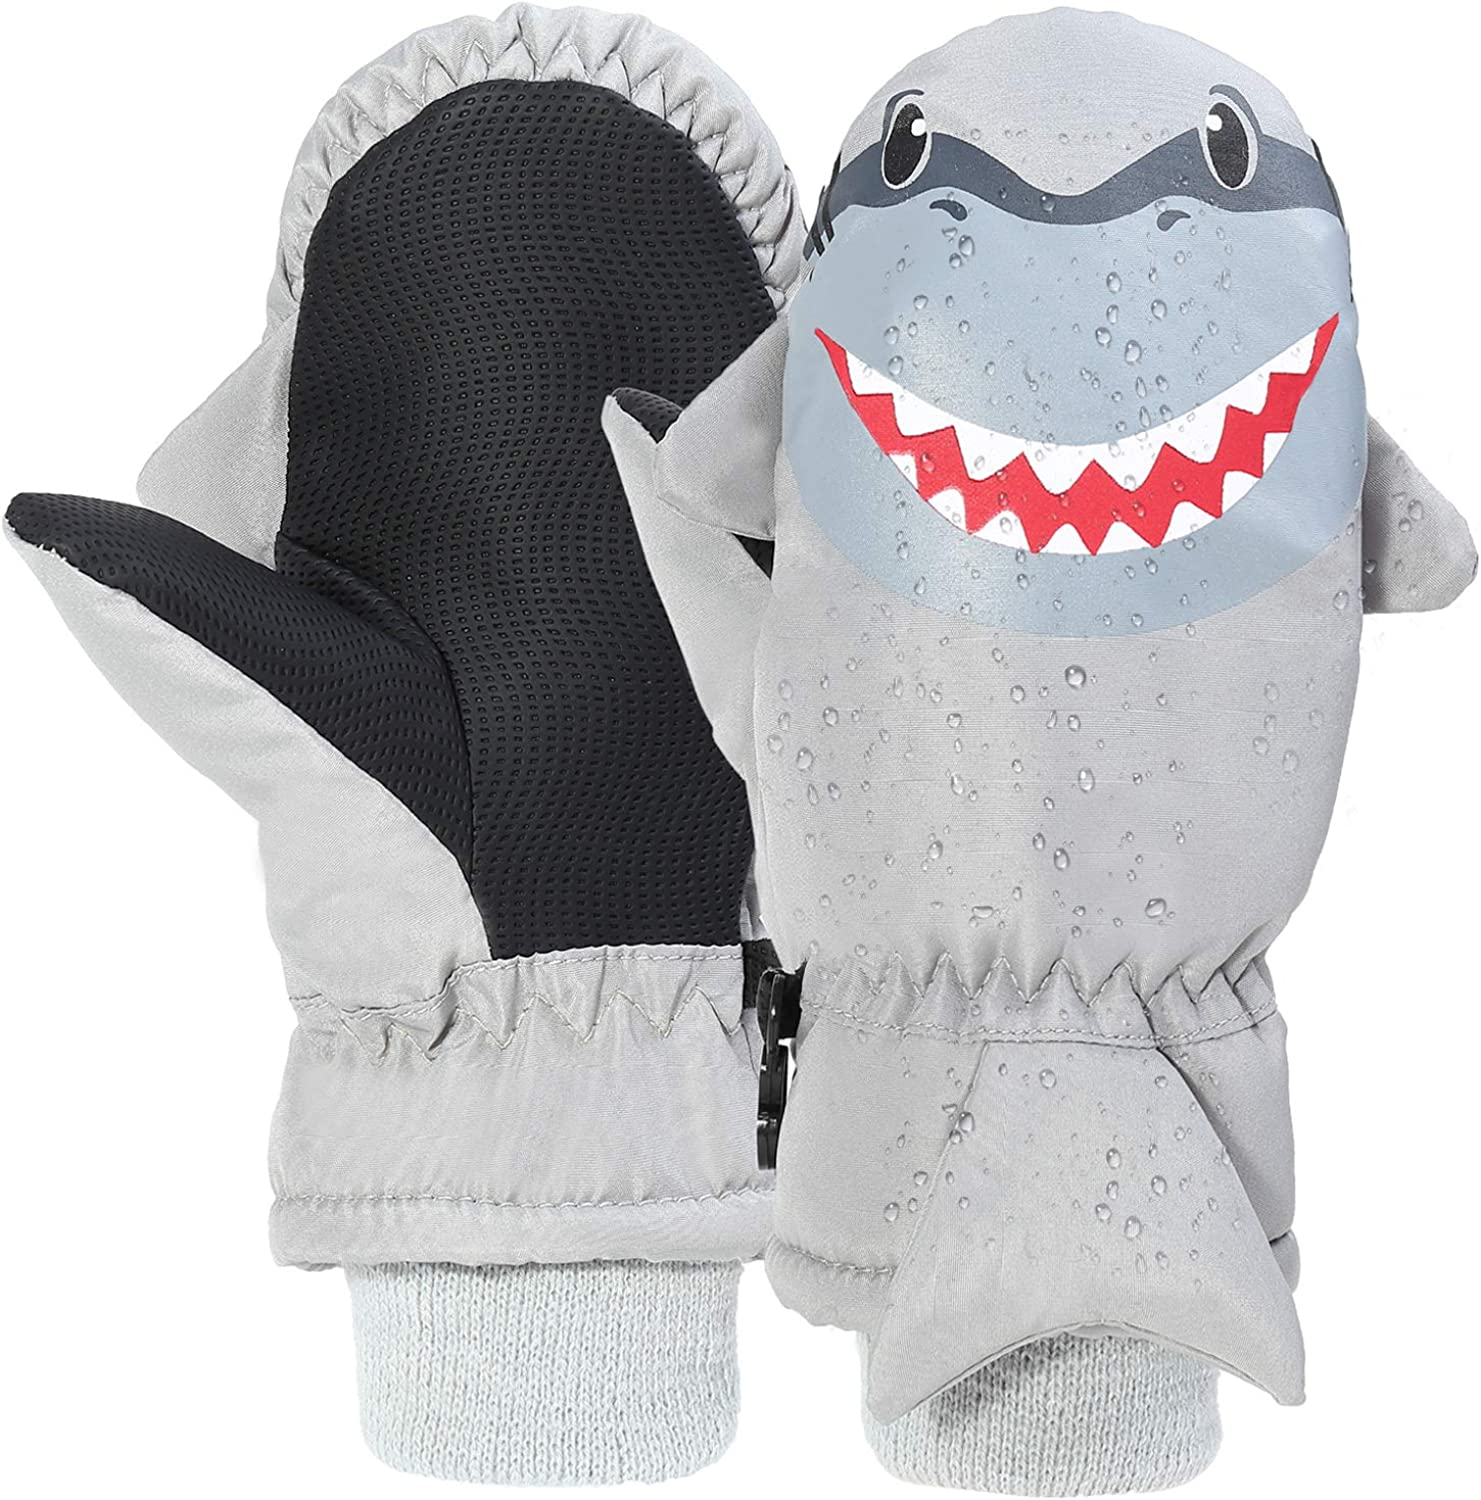 7-Mi Kids Winter Waterproof Ski Gloves Shark Warm Outdoor Sport Nylon Mitten for 3-6Y